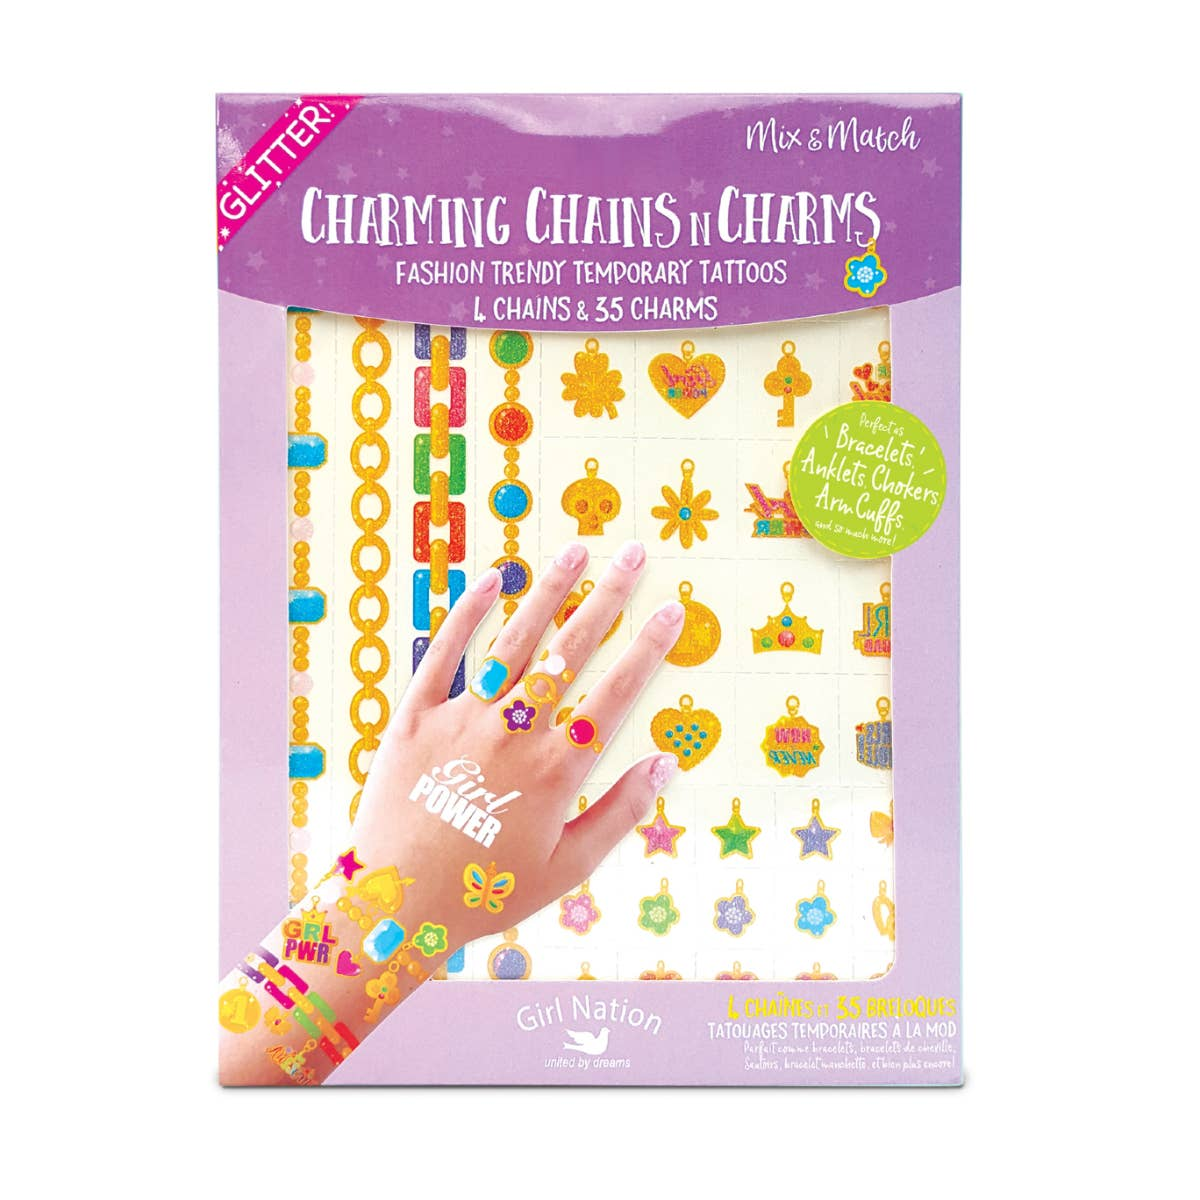 Charming Chains n Charms Temporary Tattoos- Girl Power | Trada Marketplace